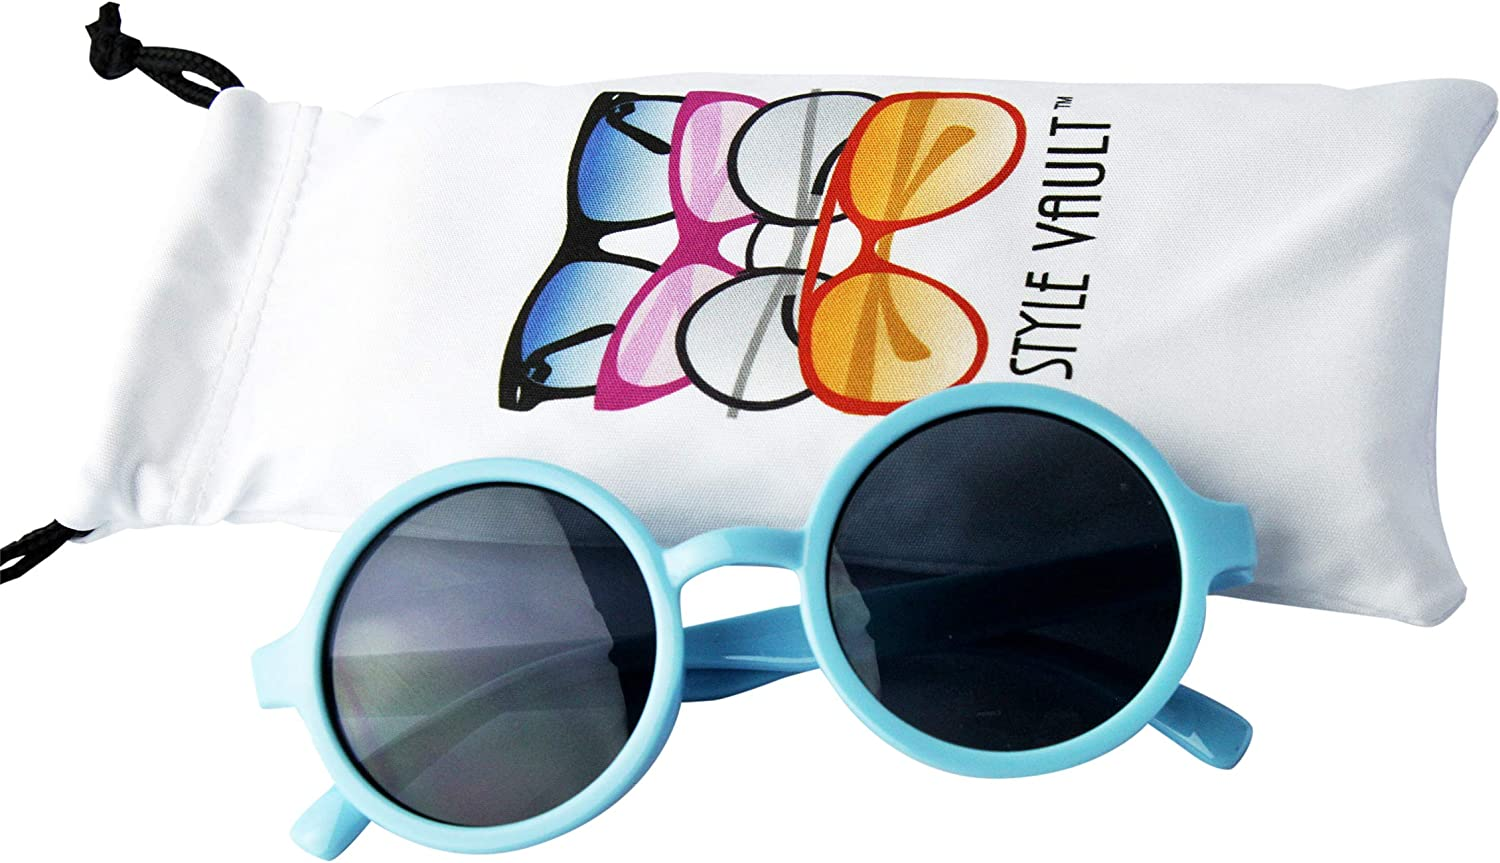 Kd3008 Baby Infant Toddlers Age 0~24 Months Round Retro Sunglasses